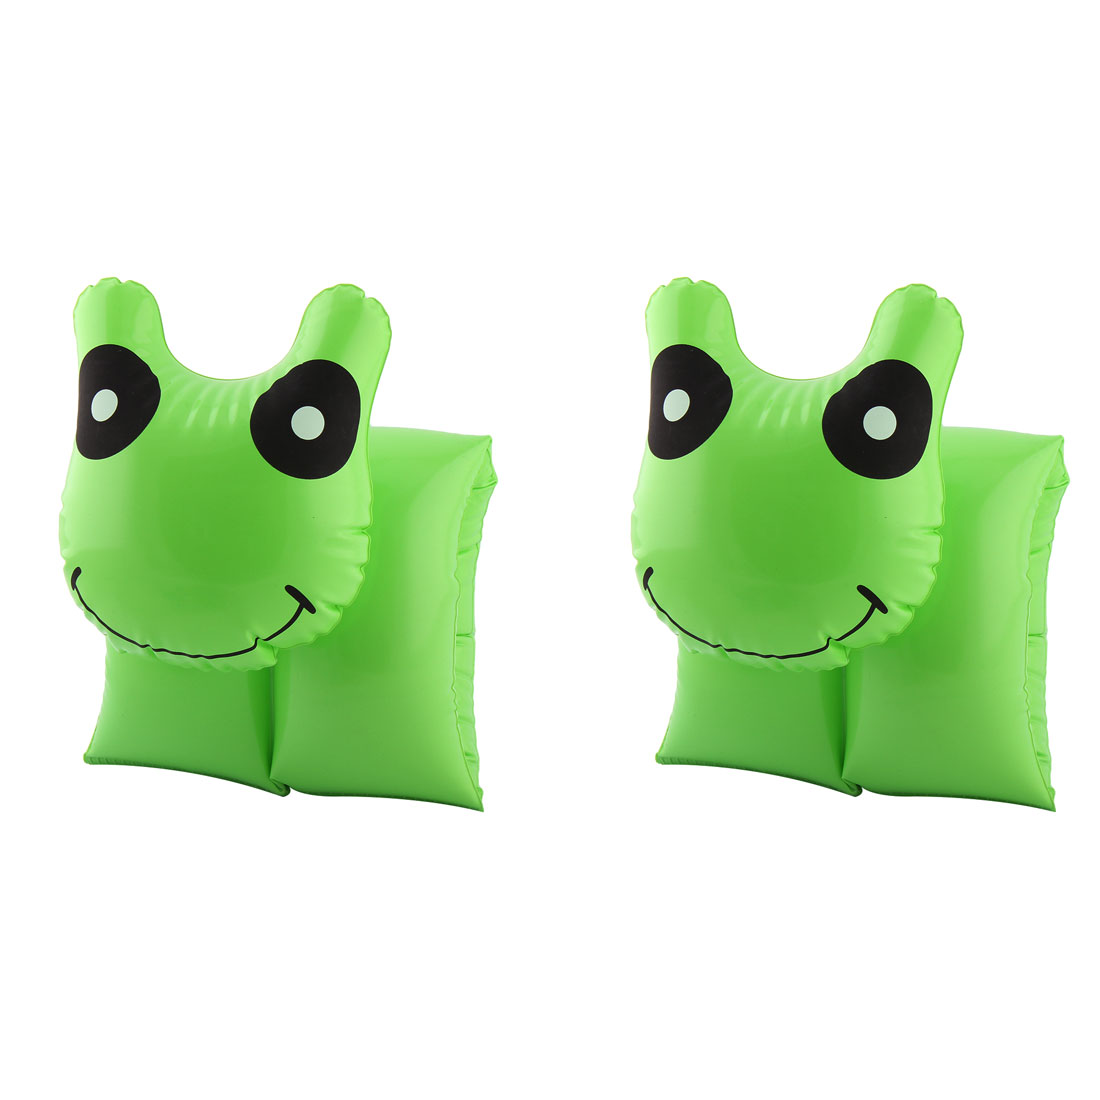 Swimming Float Inflatable Roll Up Smiling Face Pattern Decoration Swim Arm Band Pair